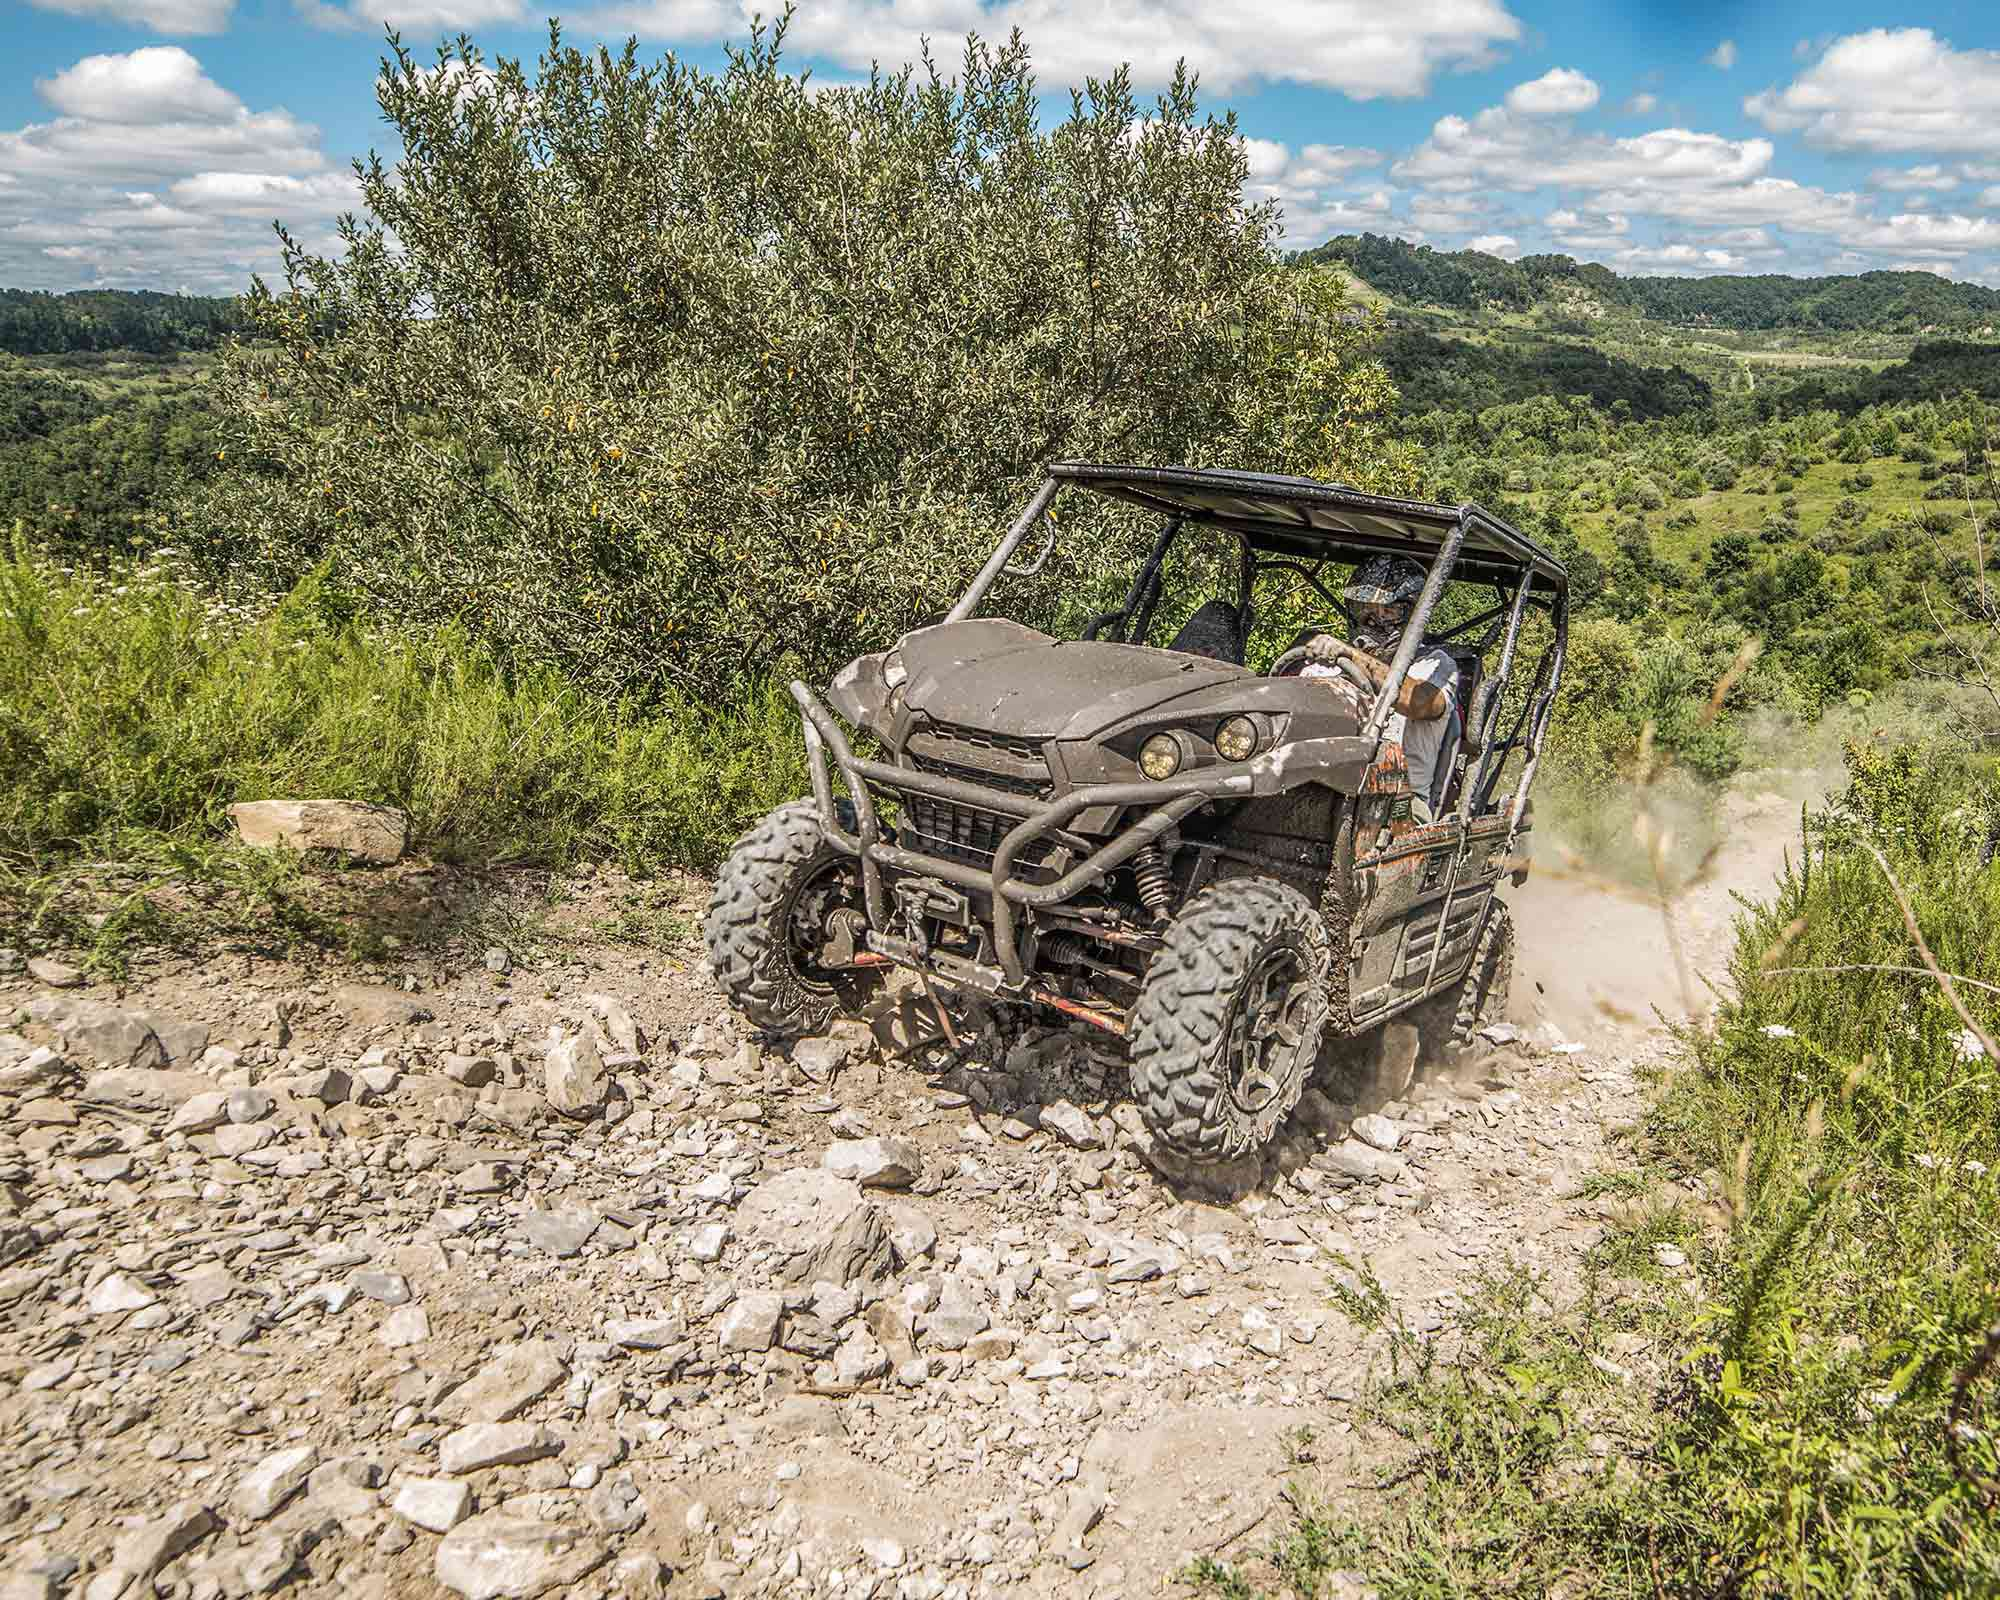 Quick access to a massive trail system attracts powersports users from across the country.